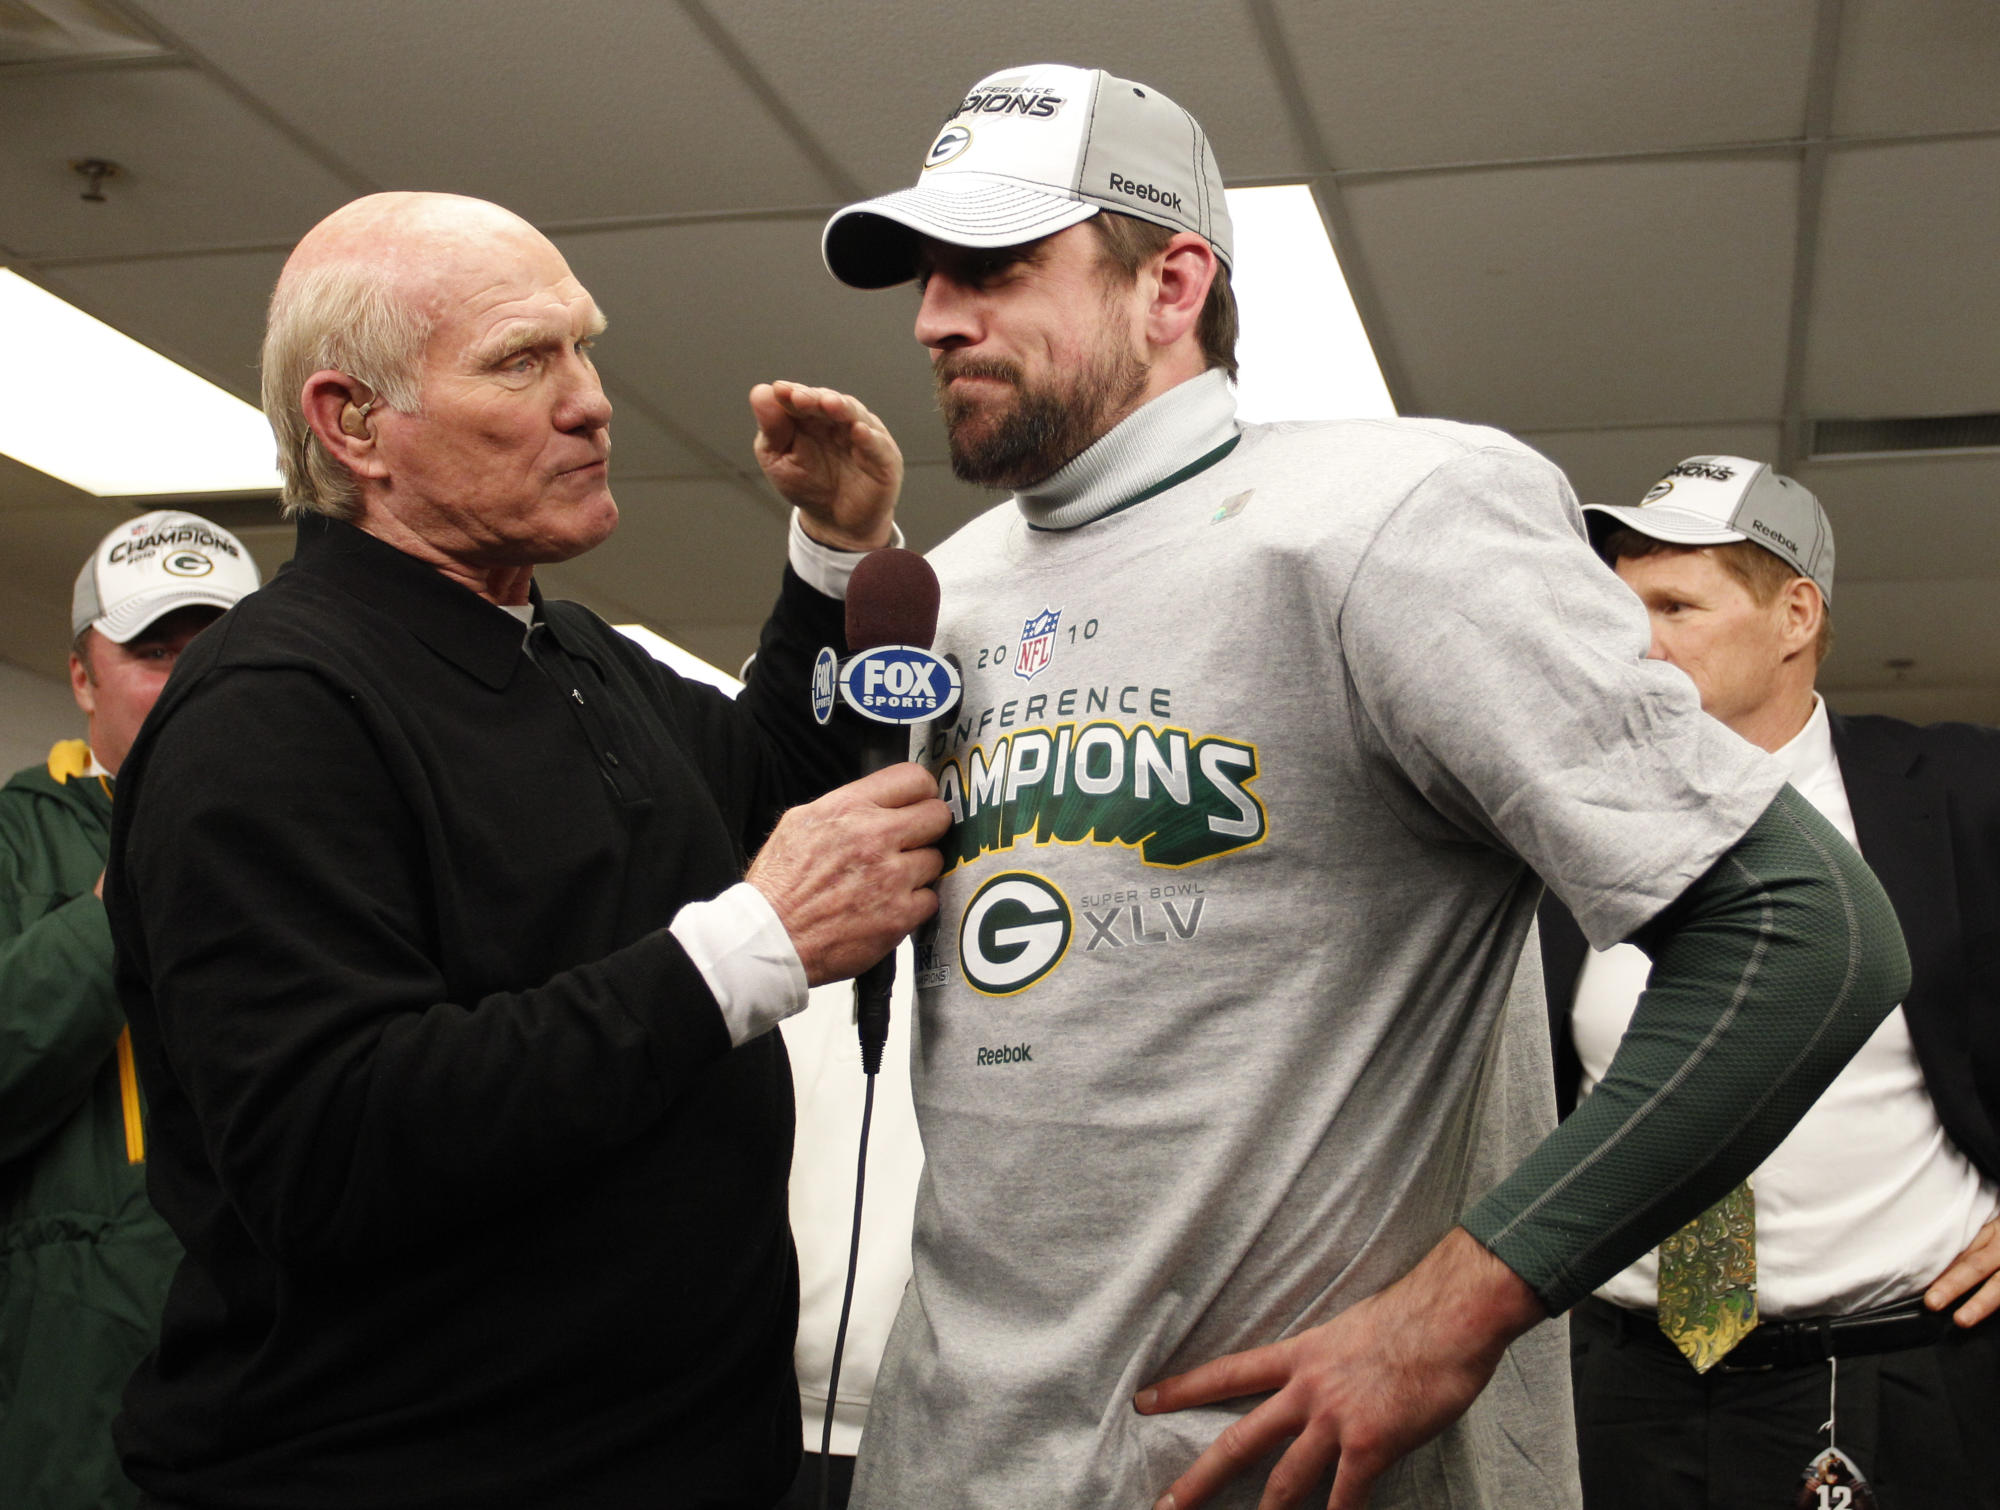 Terry Bradshaw says Aaron Rodgers is 'weak' for being upset with Packers – Yahoo Sports